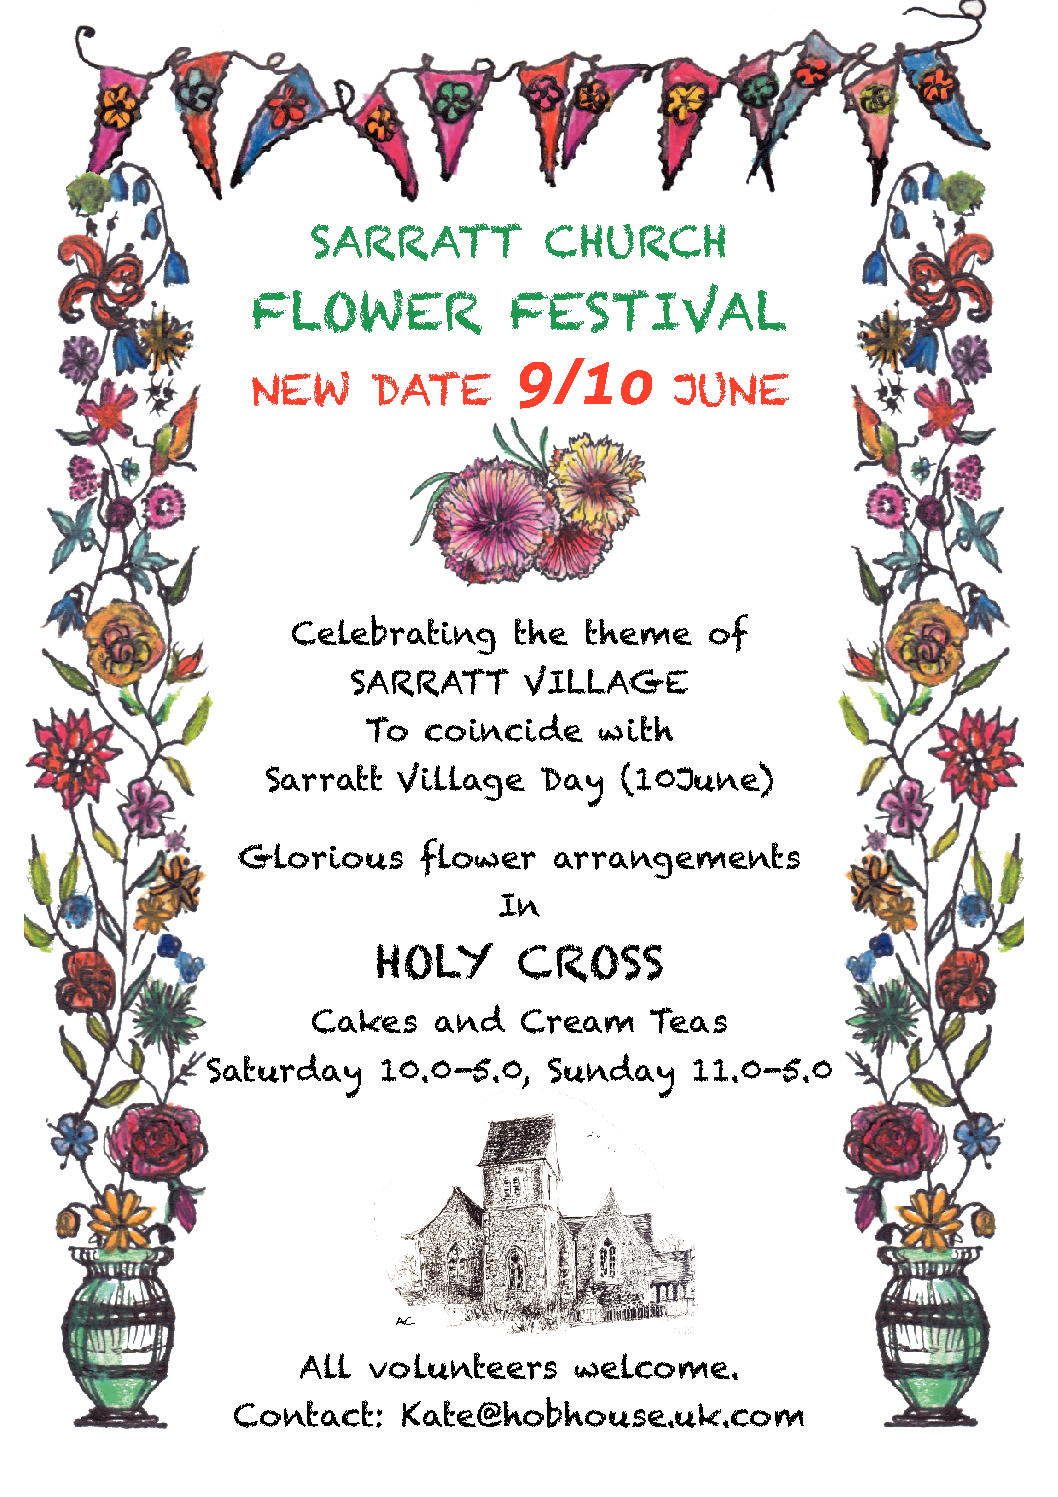 Holy Cross Flower Festival… New Date.